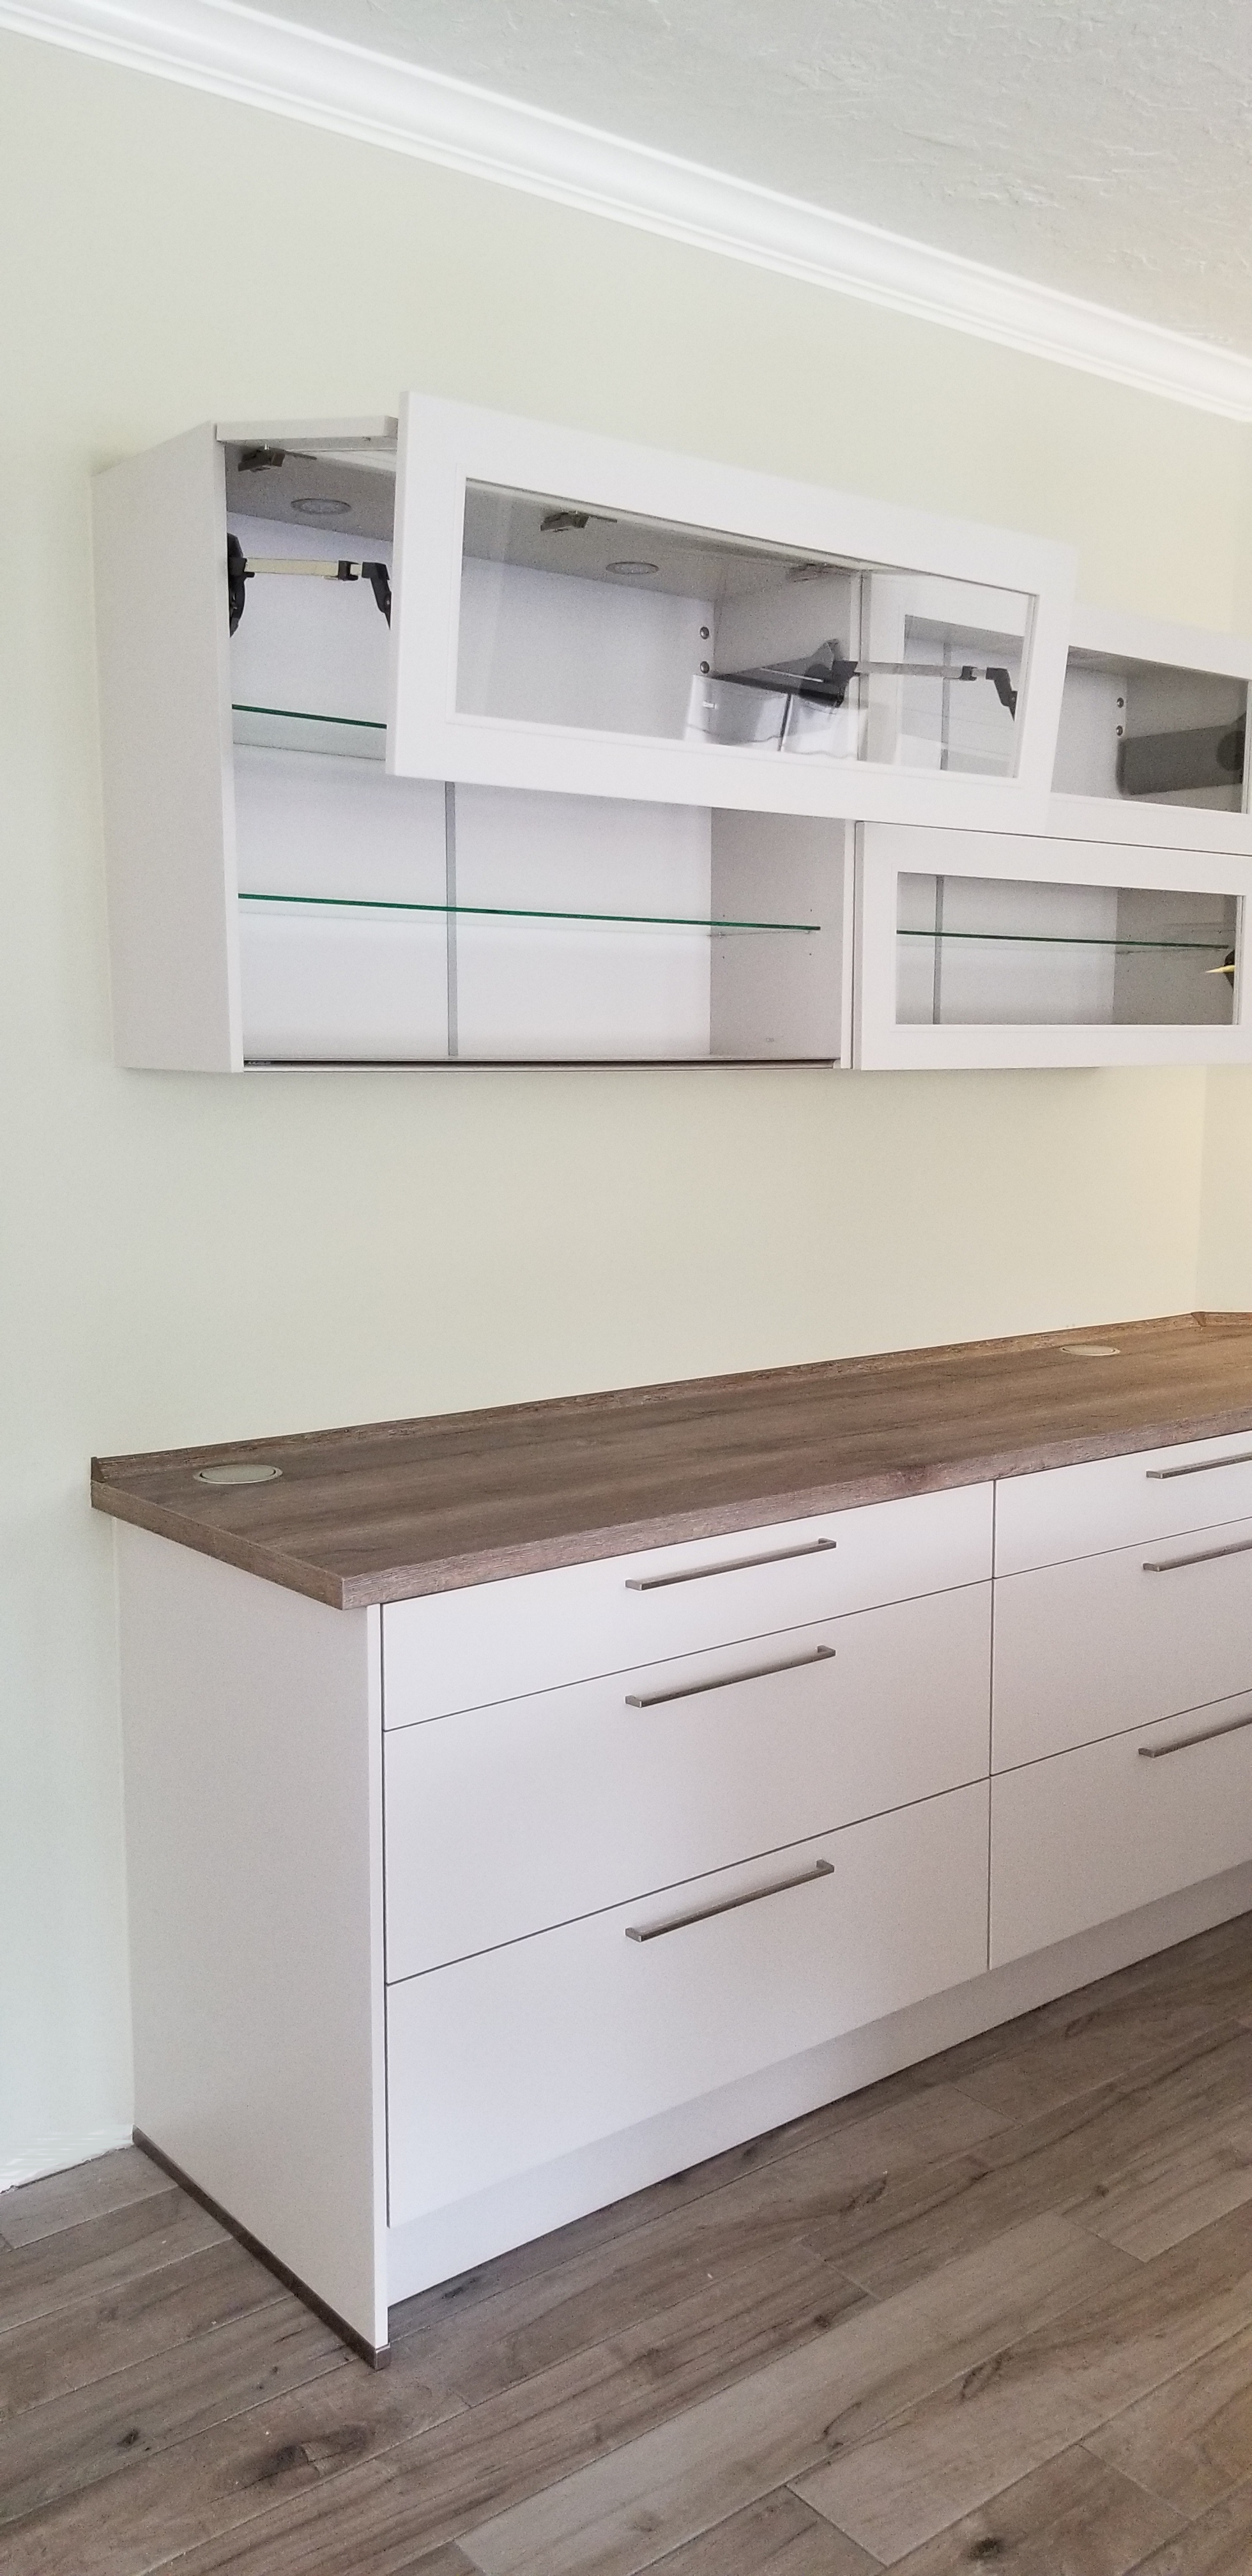 cabinets for kitchen /laundry room